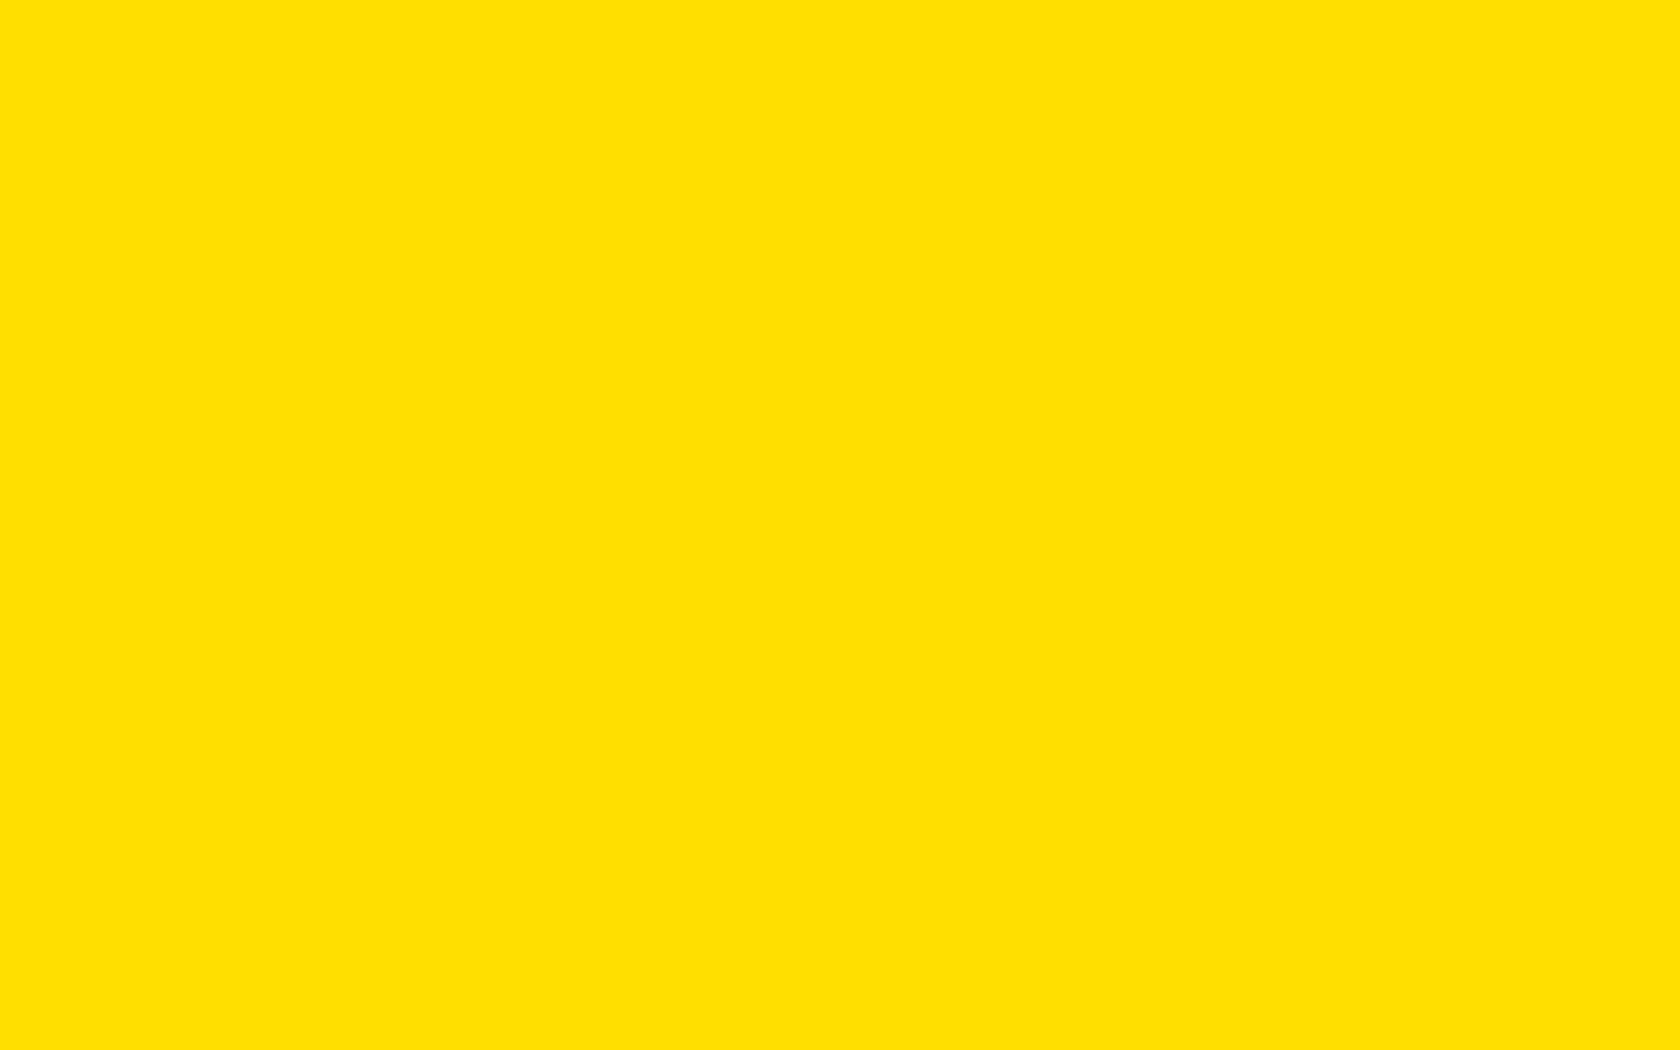 1680x1050 Yellow Pantone Solid Color Background